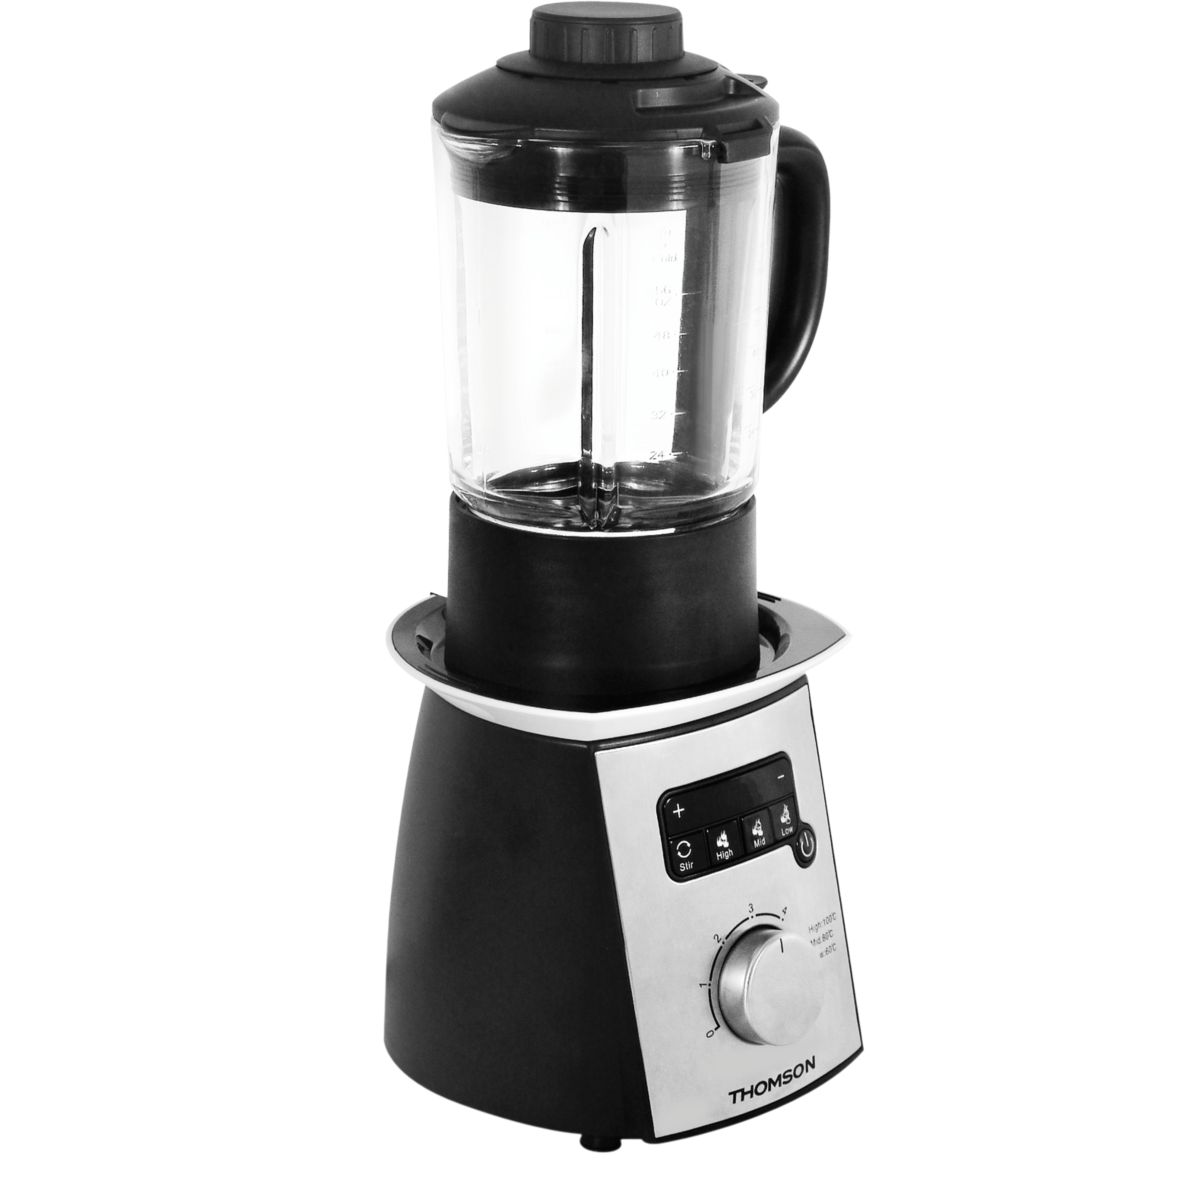 Blender chauffant THOMSON SOUP MAKER GENI MIX + LIVRE DE RECET...